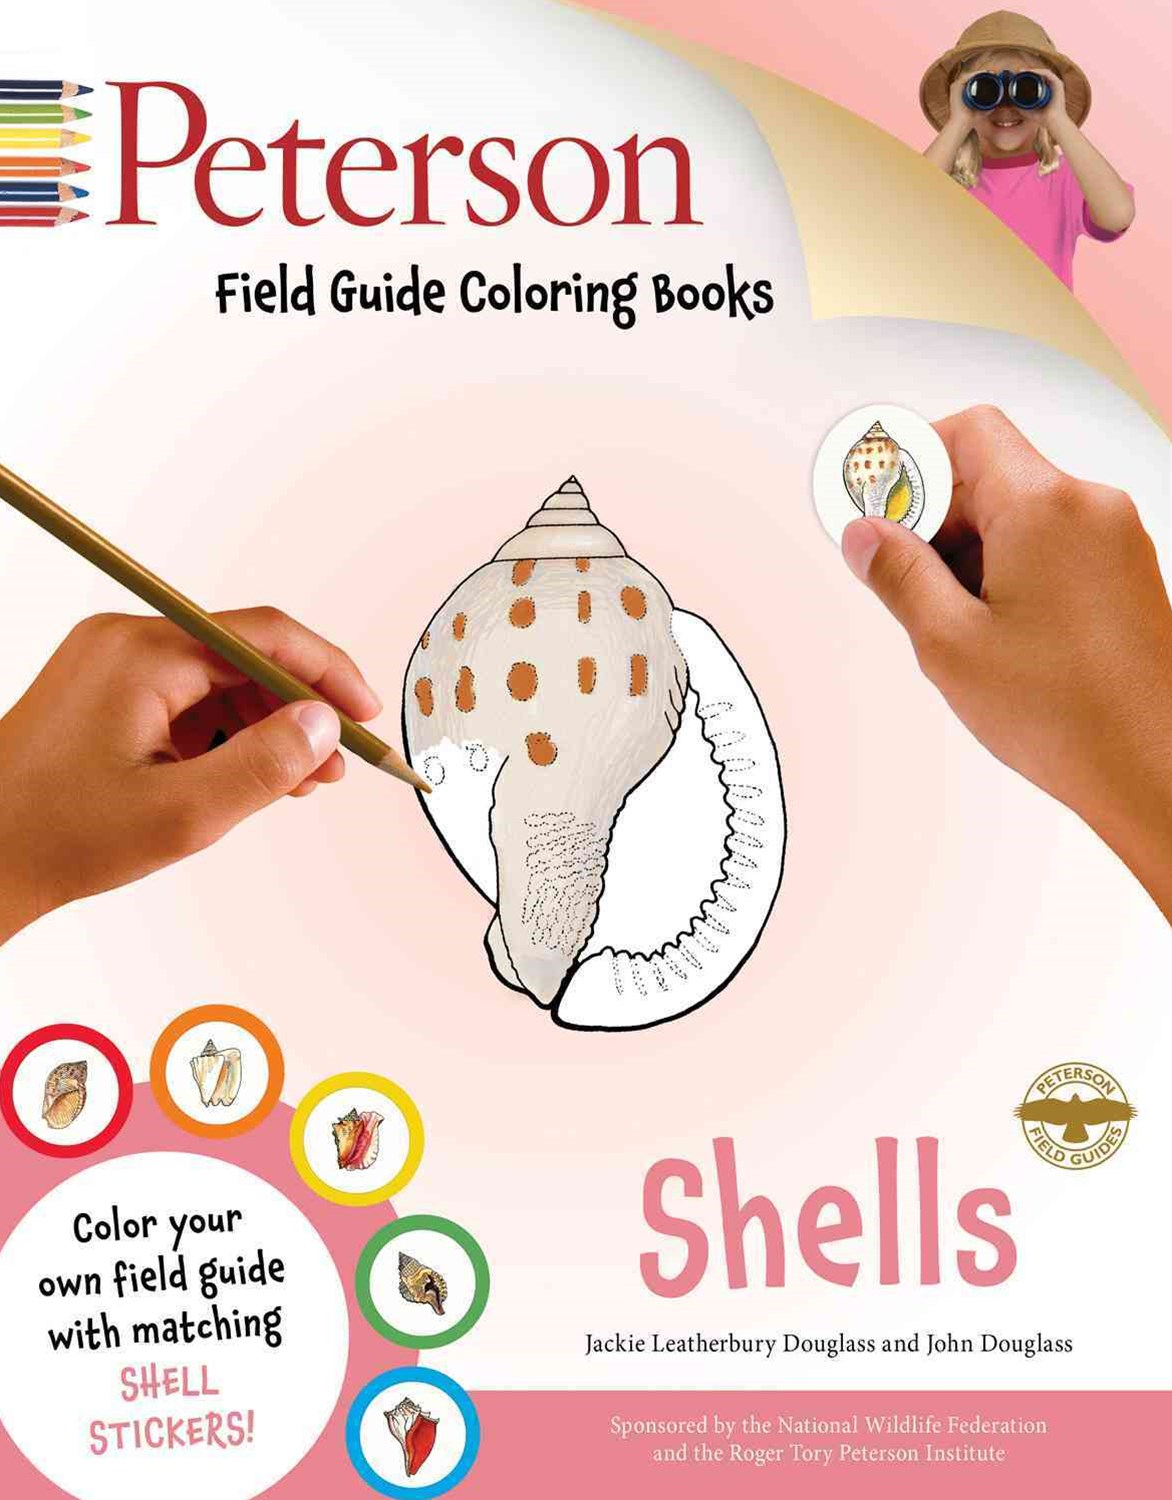 Peterson Field Guide Coloring Book: Shells